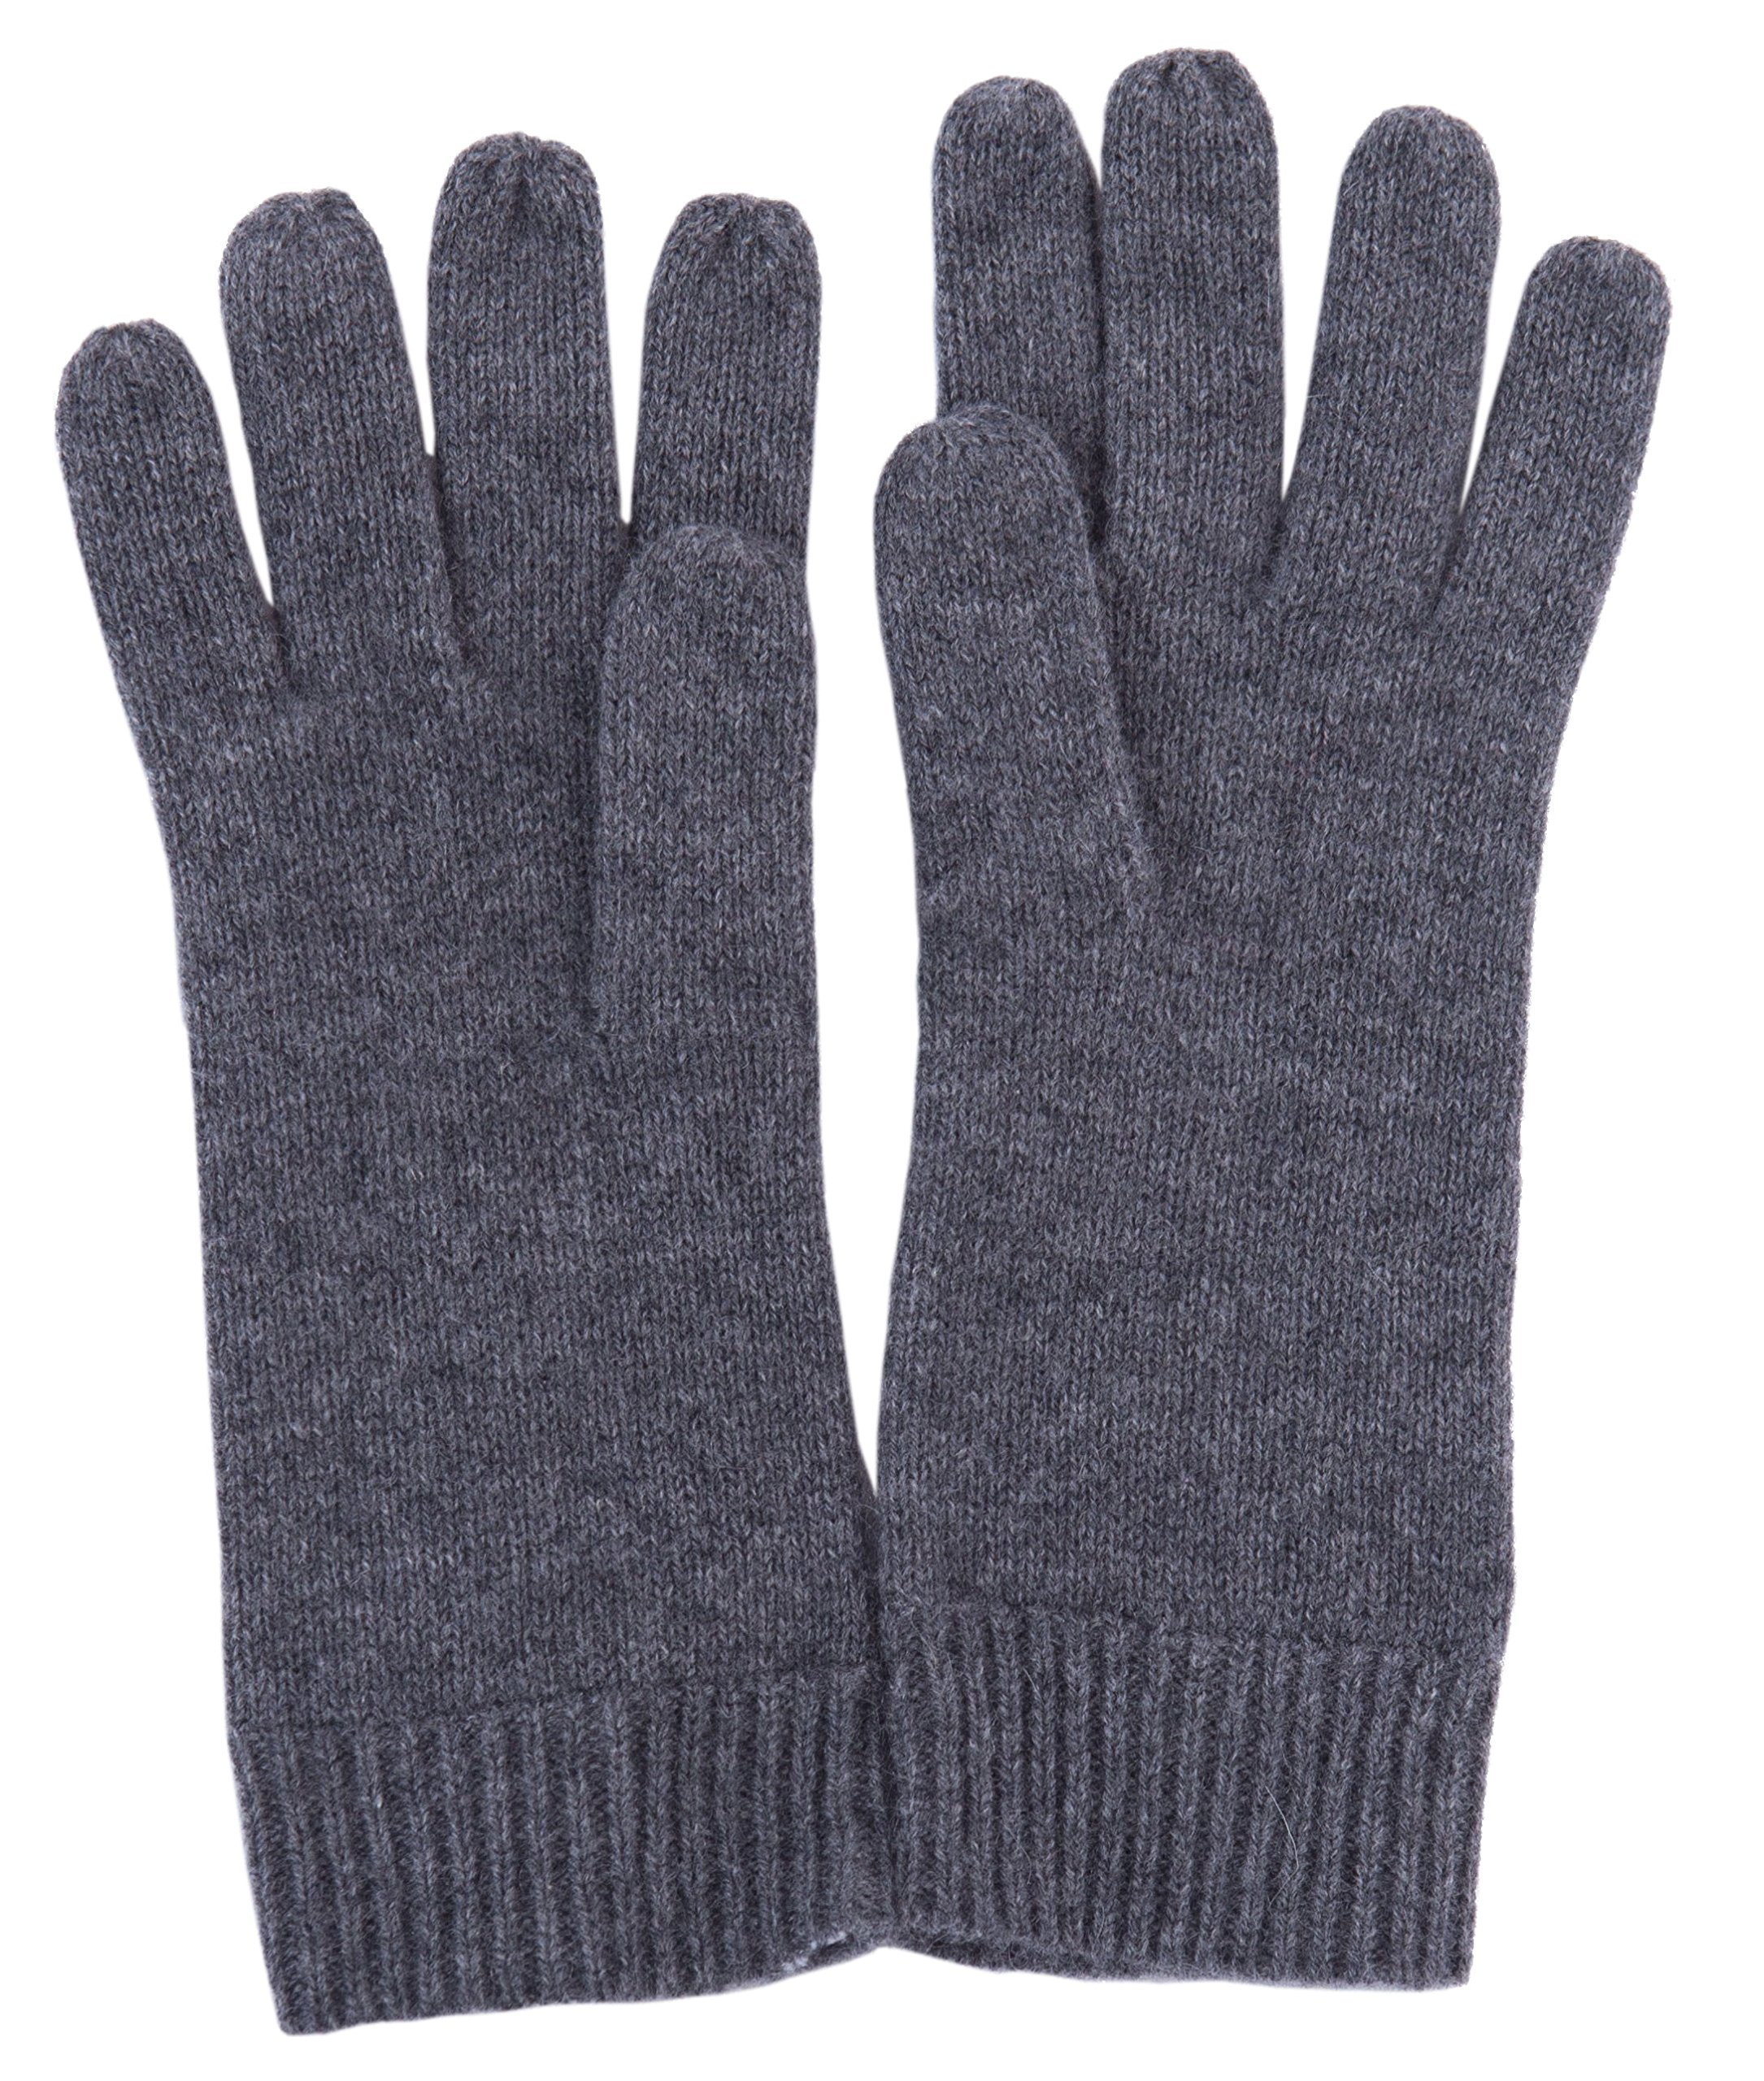 LEBAC Women's Cashmere Mitten Gloves with Ribbed cuffs